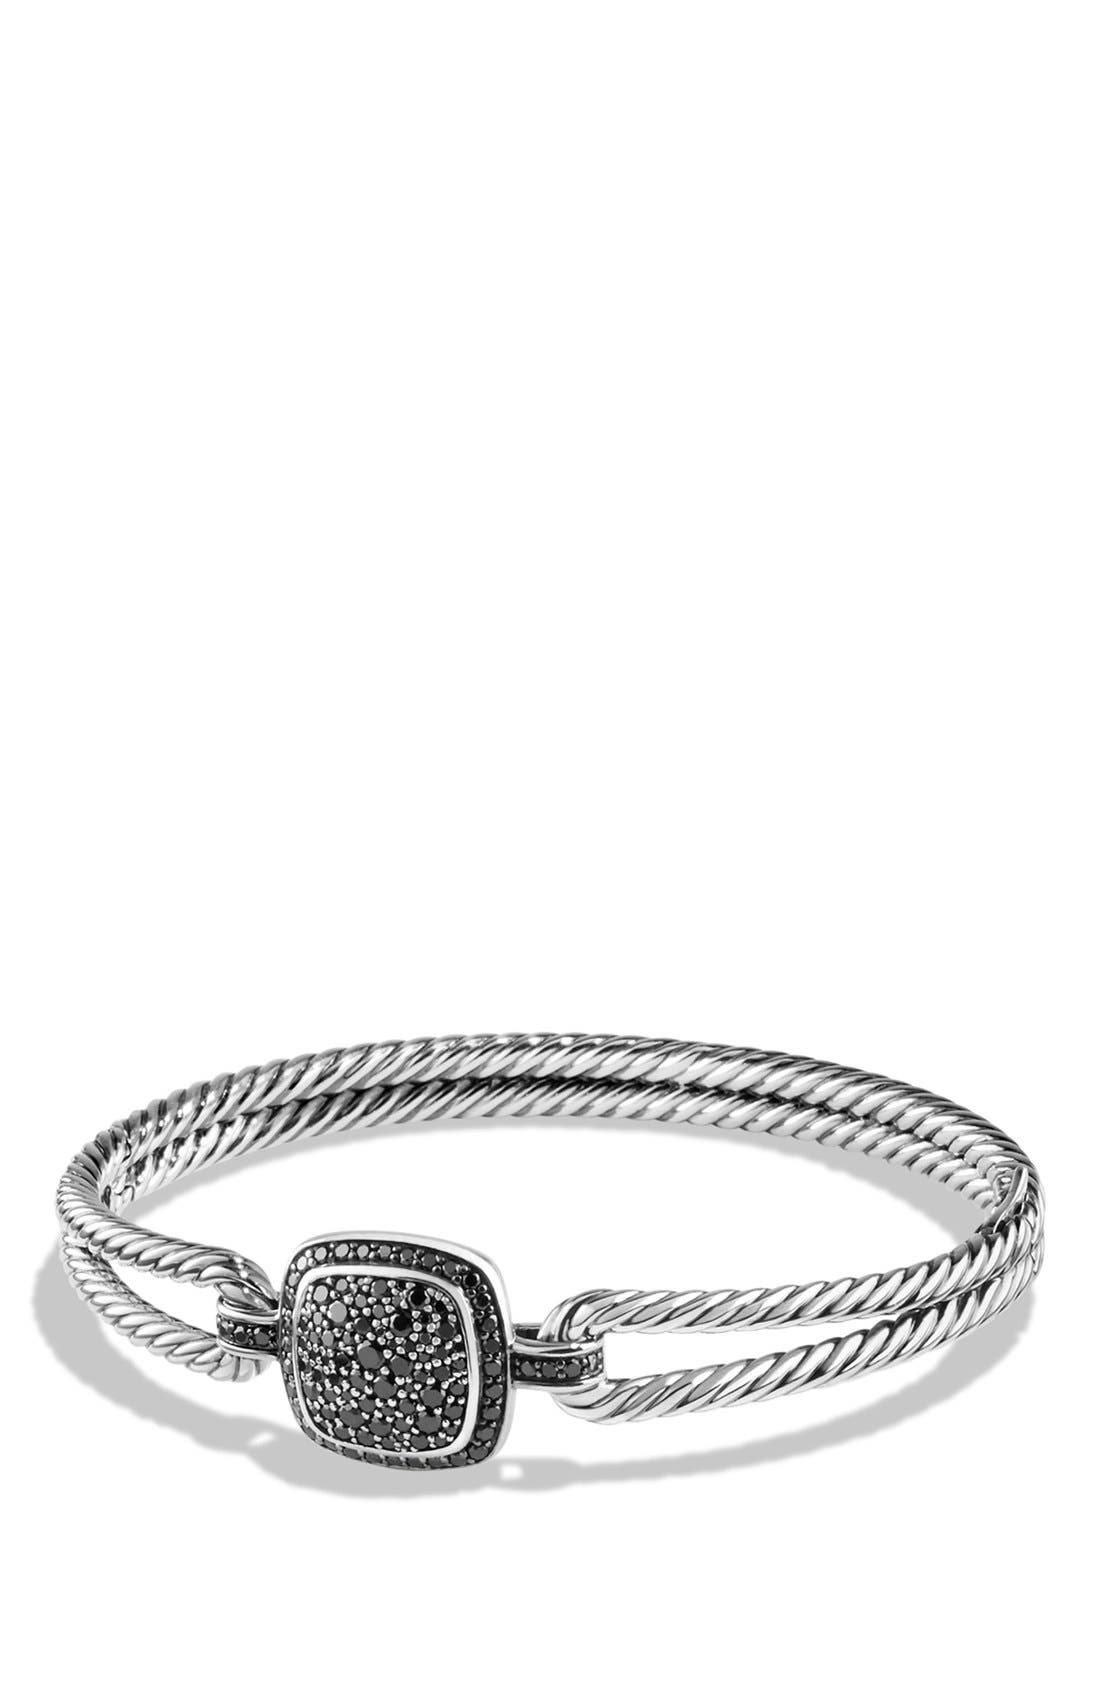 David Yurman 'Albion' Bracelet with Diamonds